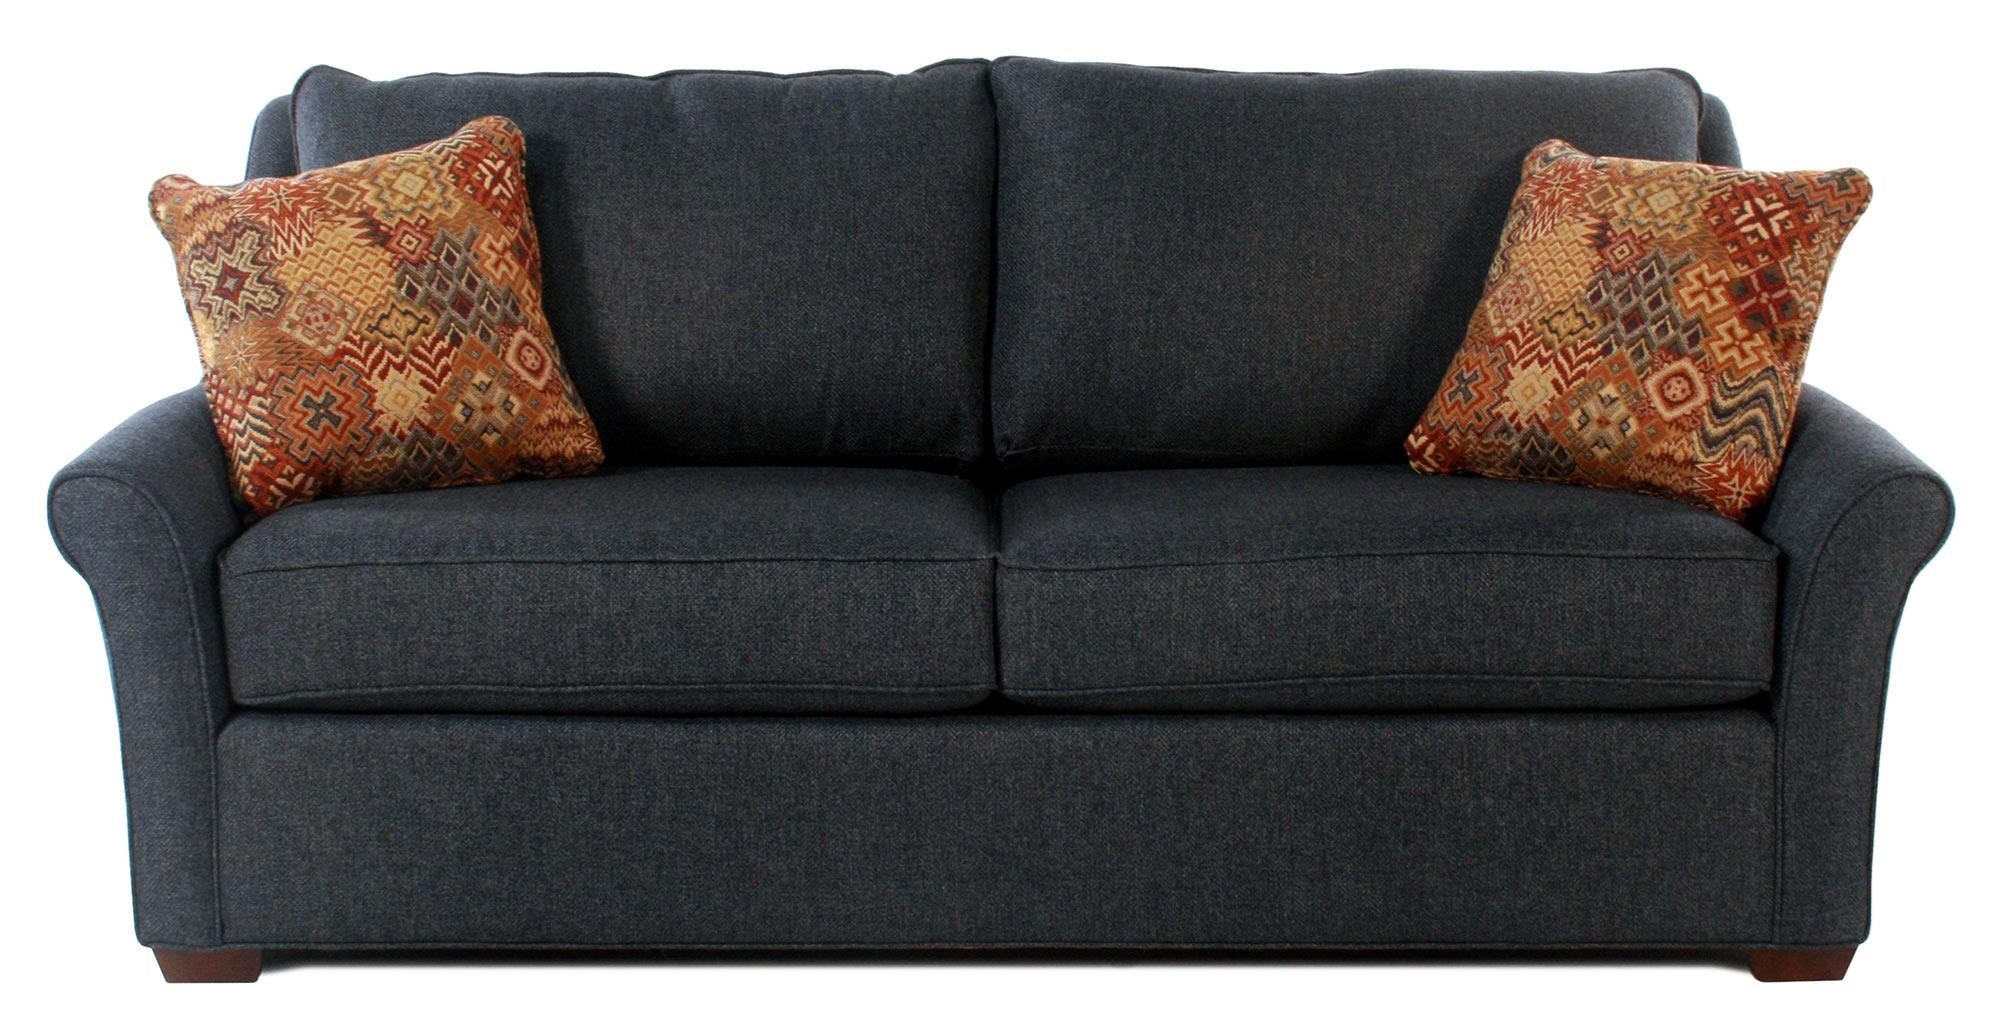 traditional sofa sleeper upholstery repair leeds flexsteel preston full with nailhead trim transitional queen w innerspring mattress revolution performance fabric